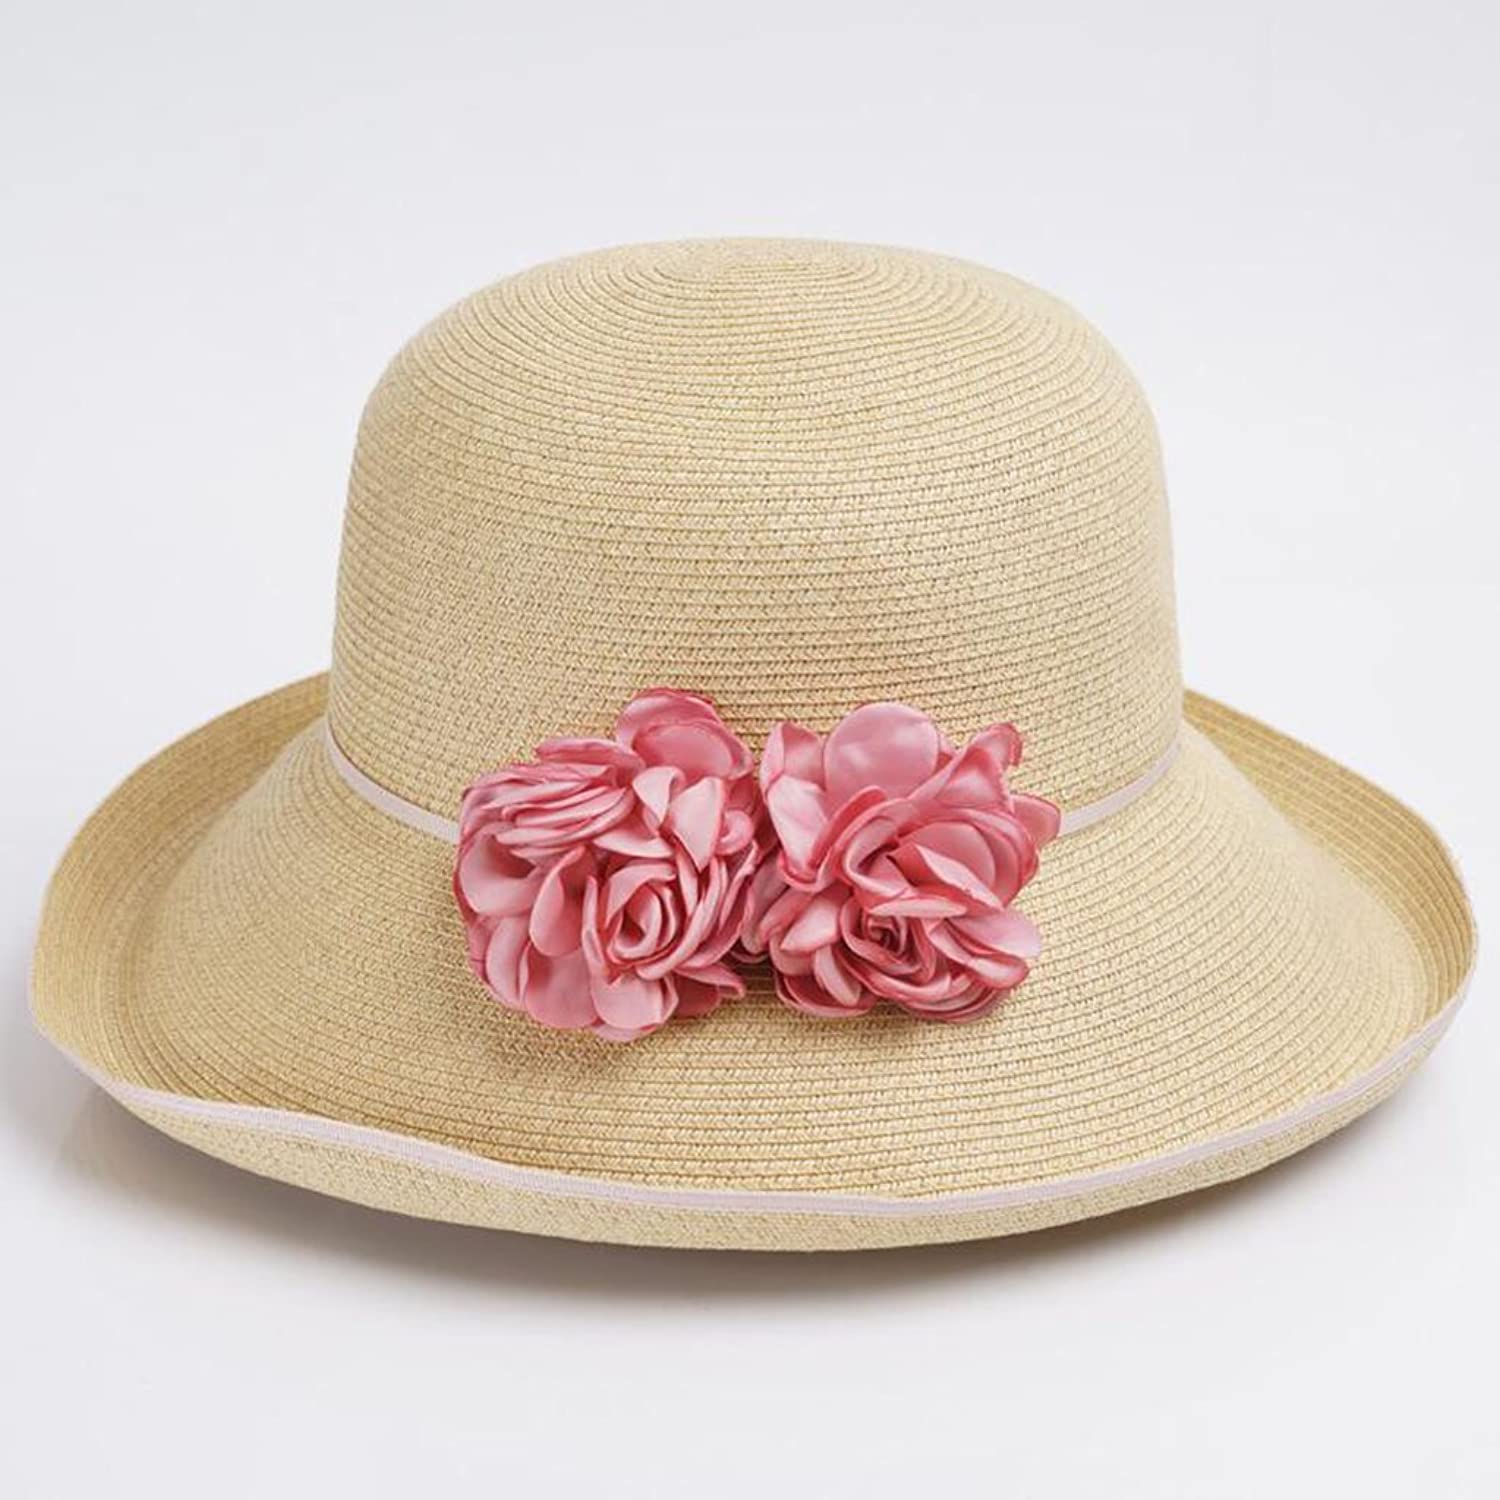 QZ Home Hat Female Spring and Summer Sun Predection Shade Sunhat Elegant Flowers Straw Hat Holiday Beach Hat (color   Pink Flowers)